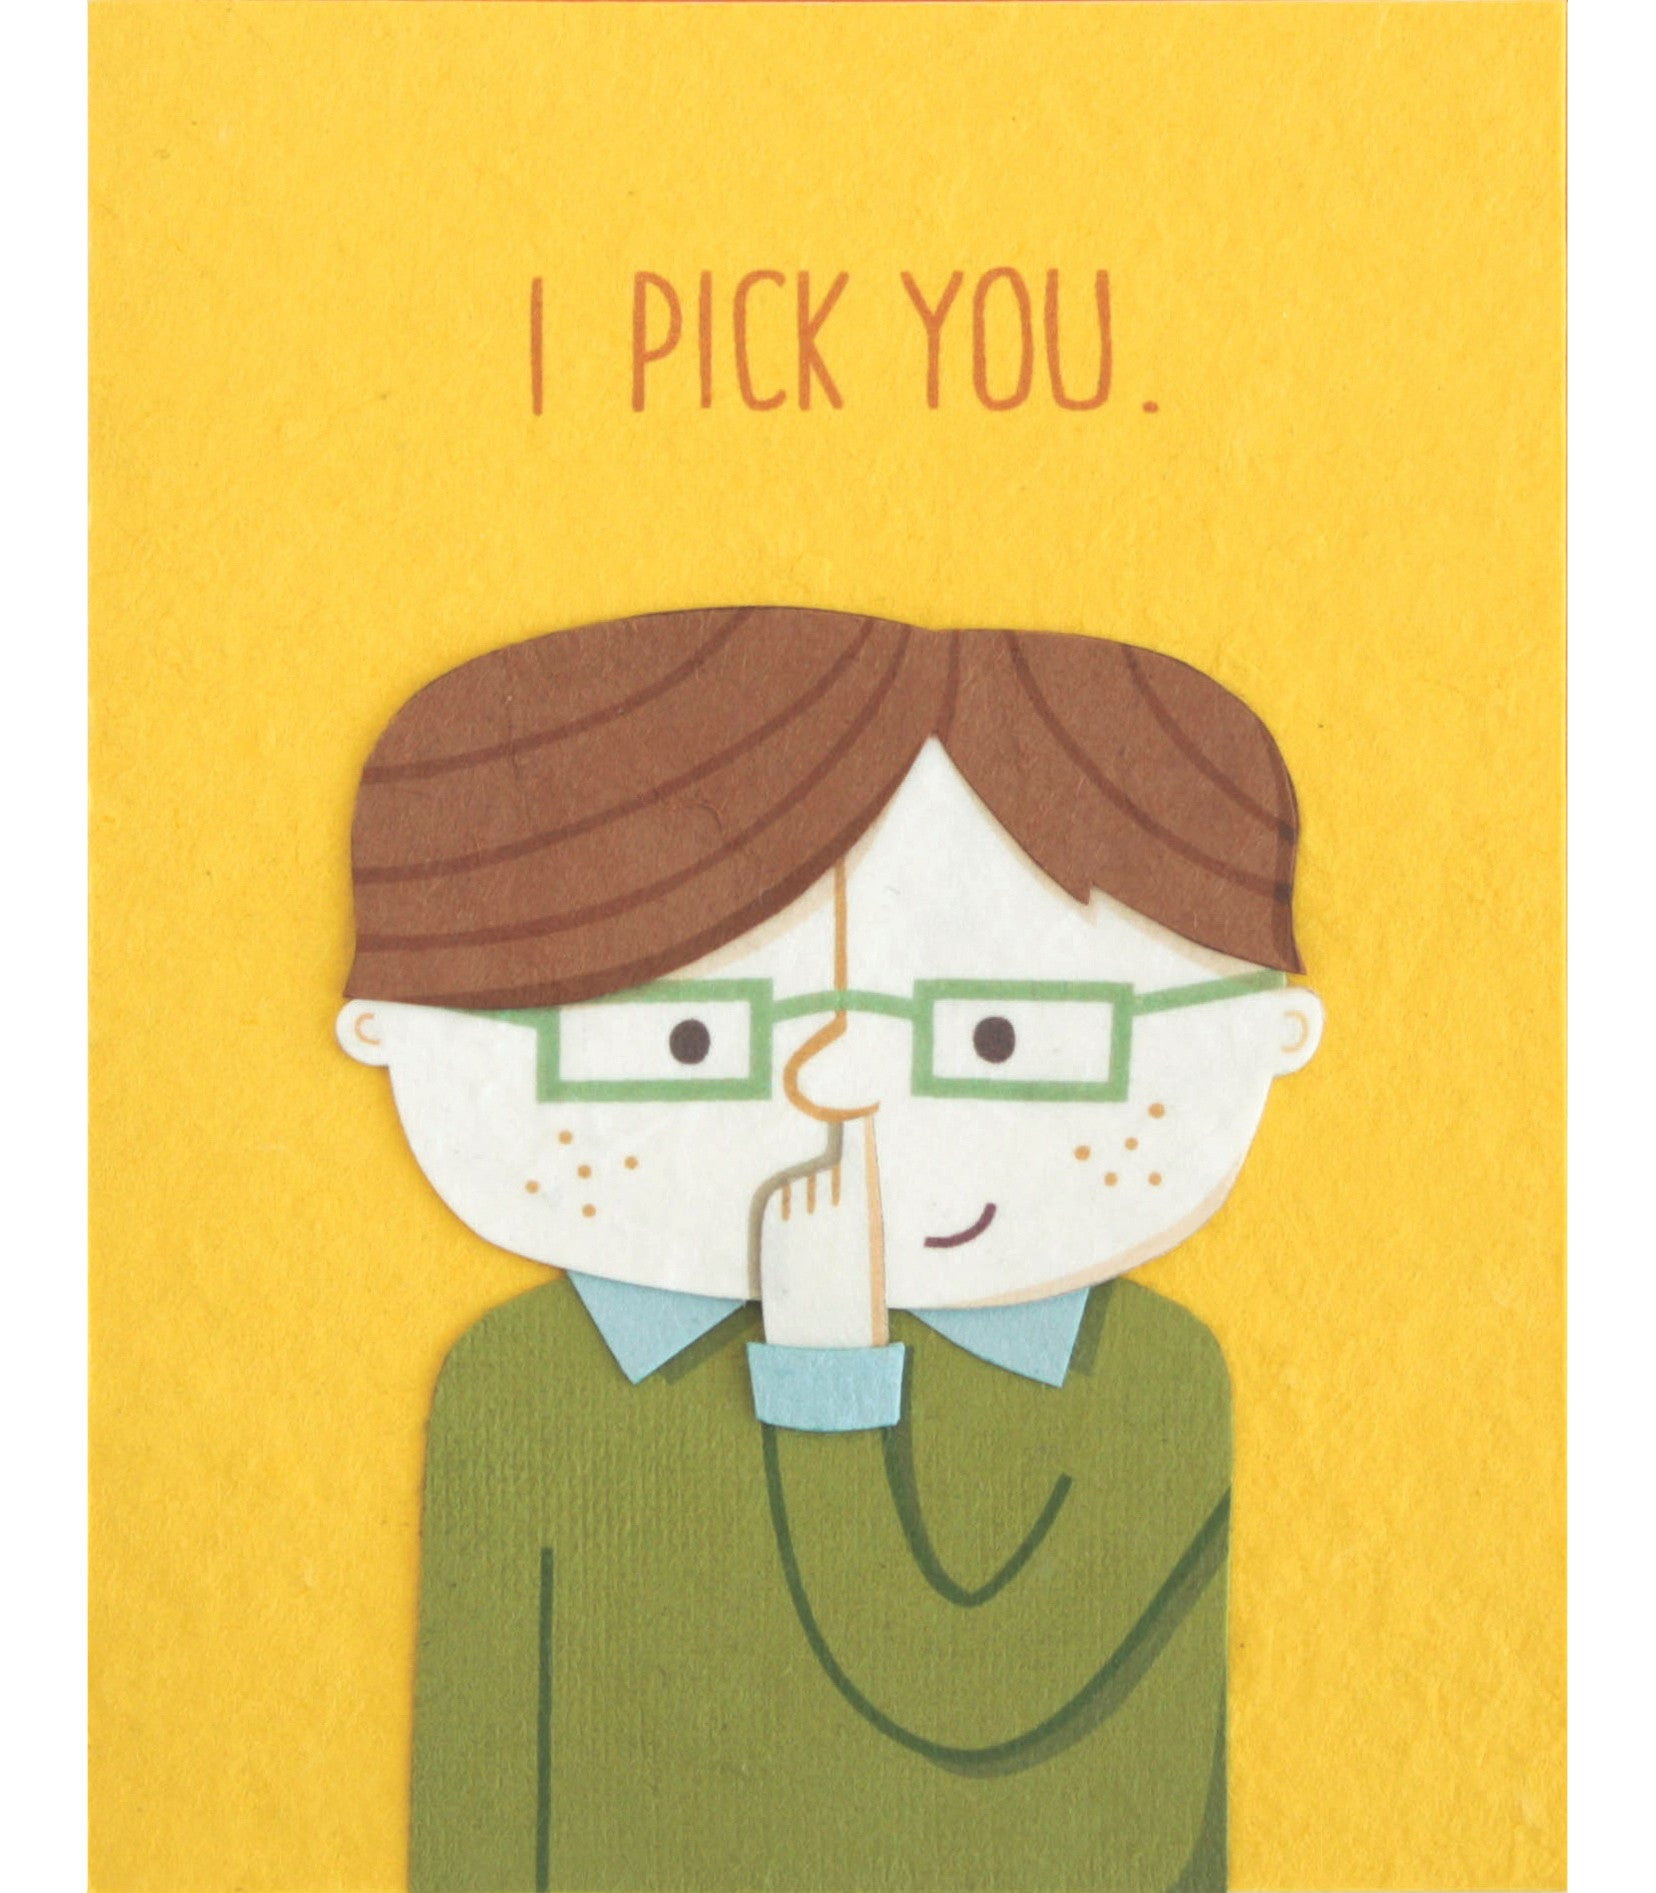 I Pick You Handcrafted Greeting Card - Good Paper